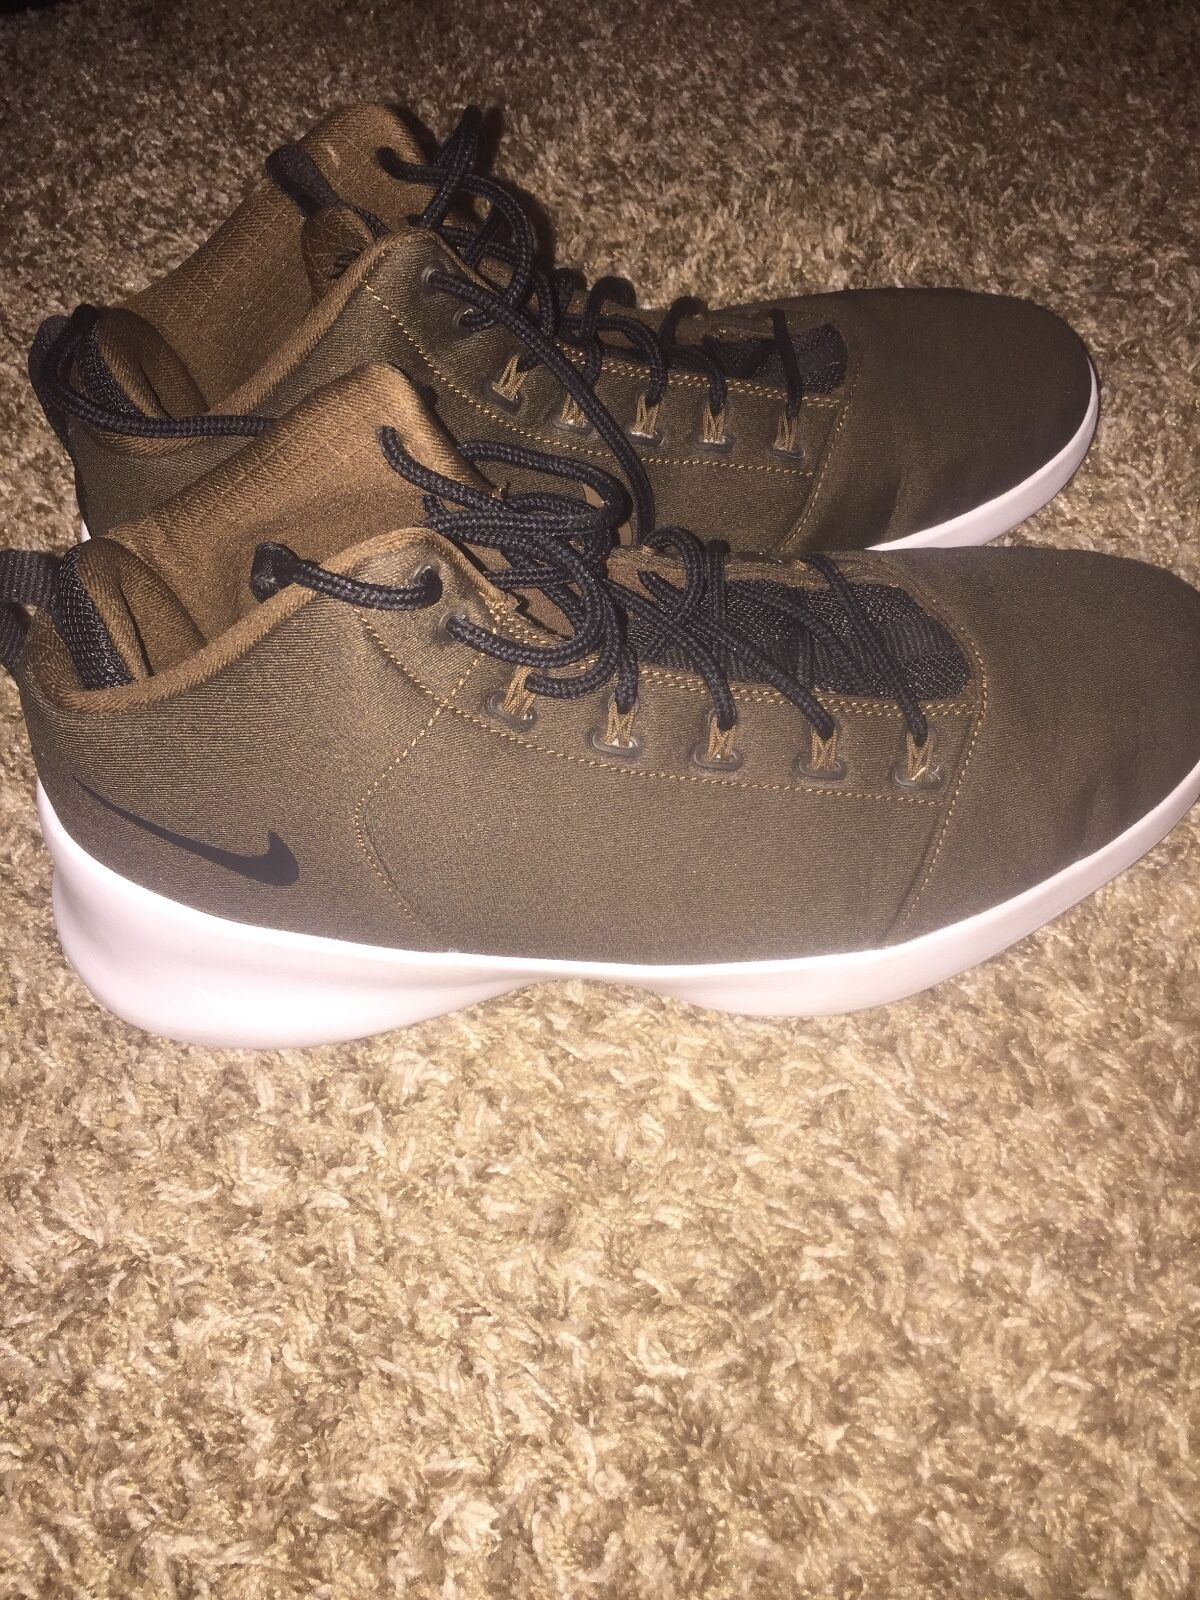 Brown nike shoes size 12